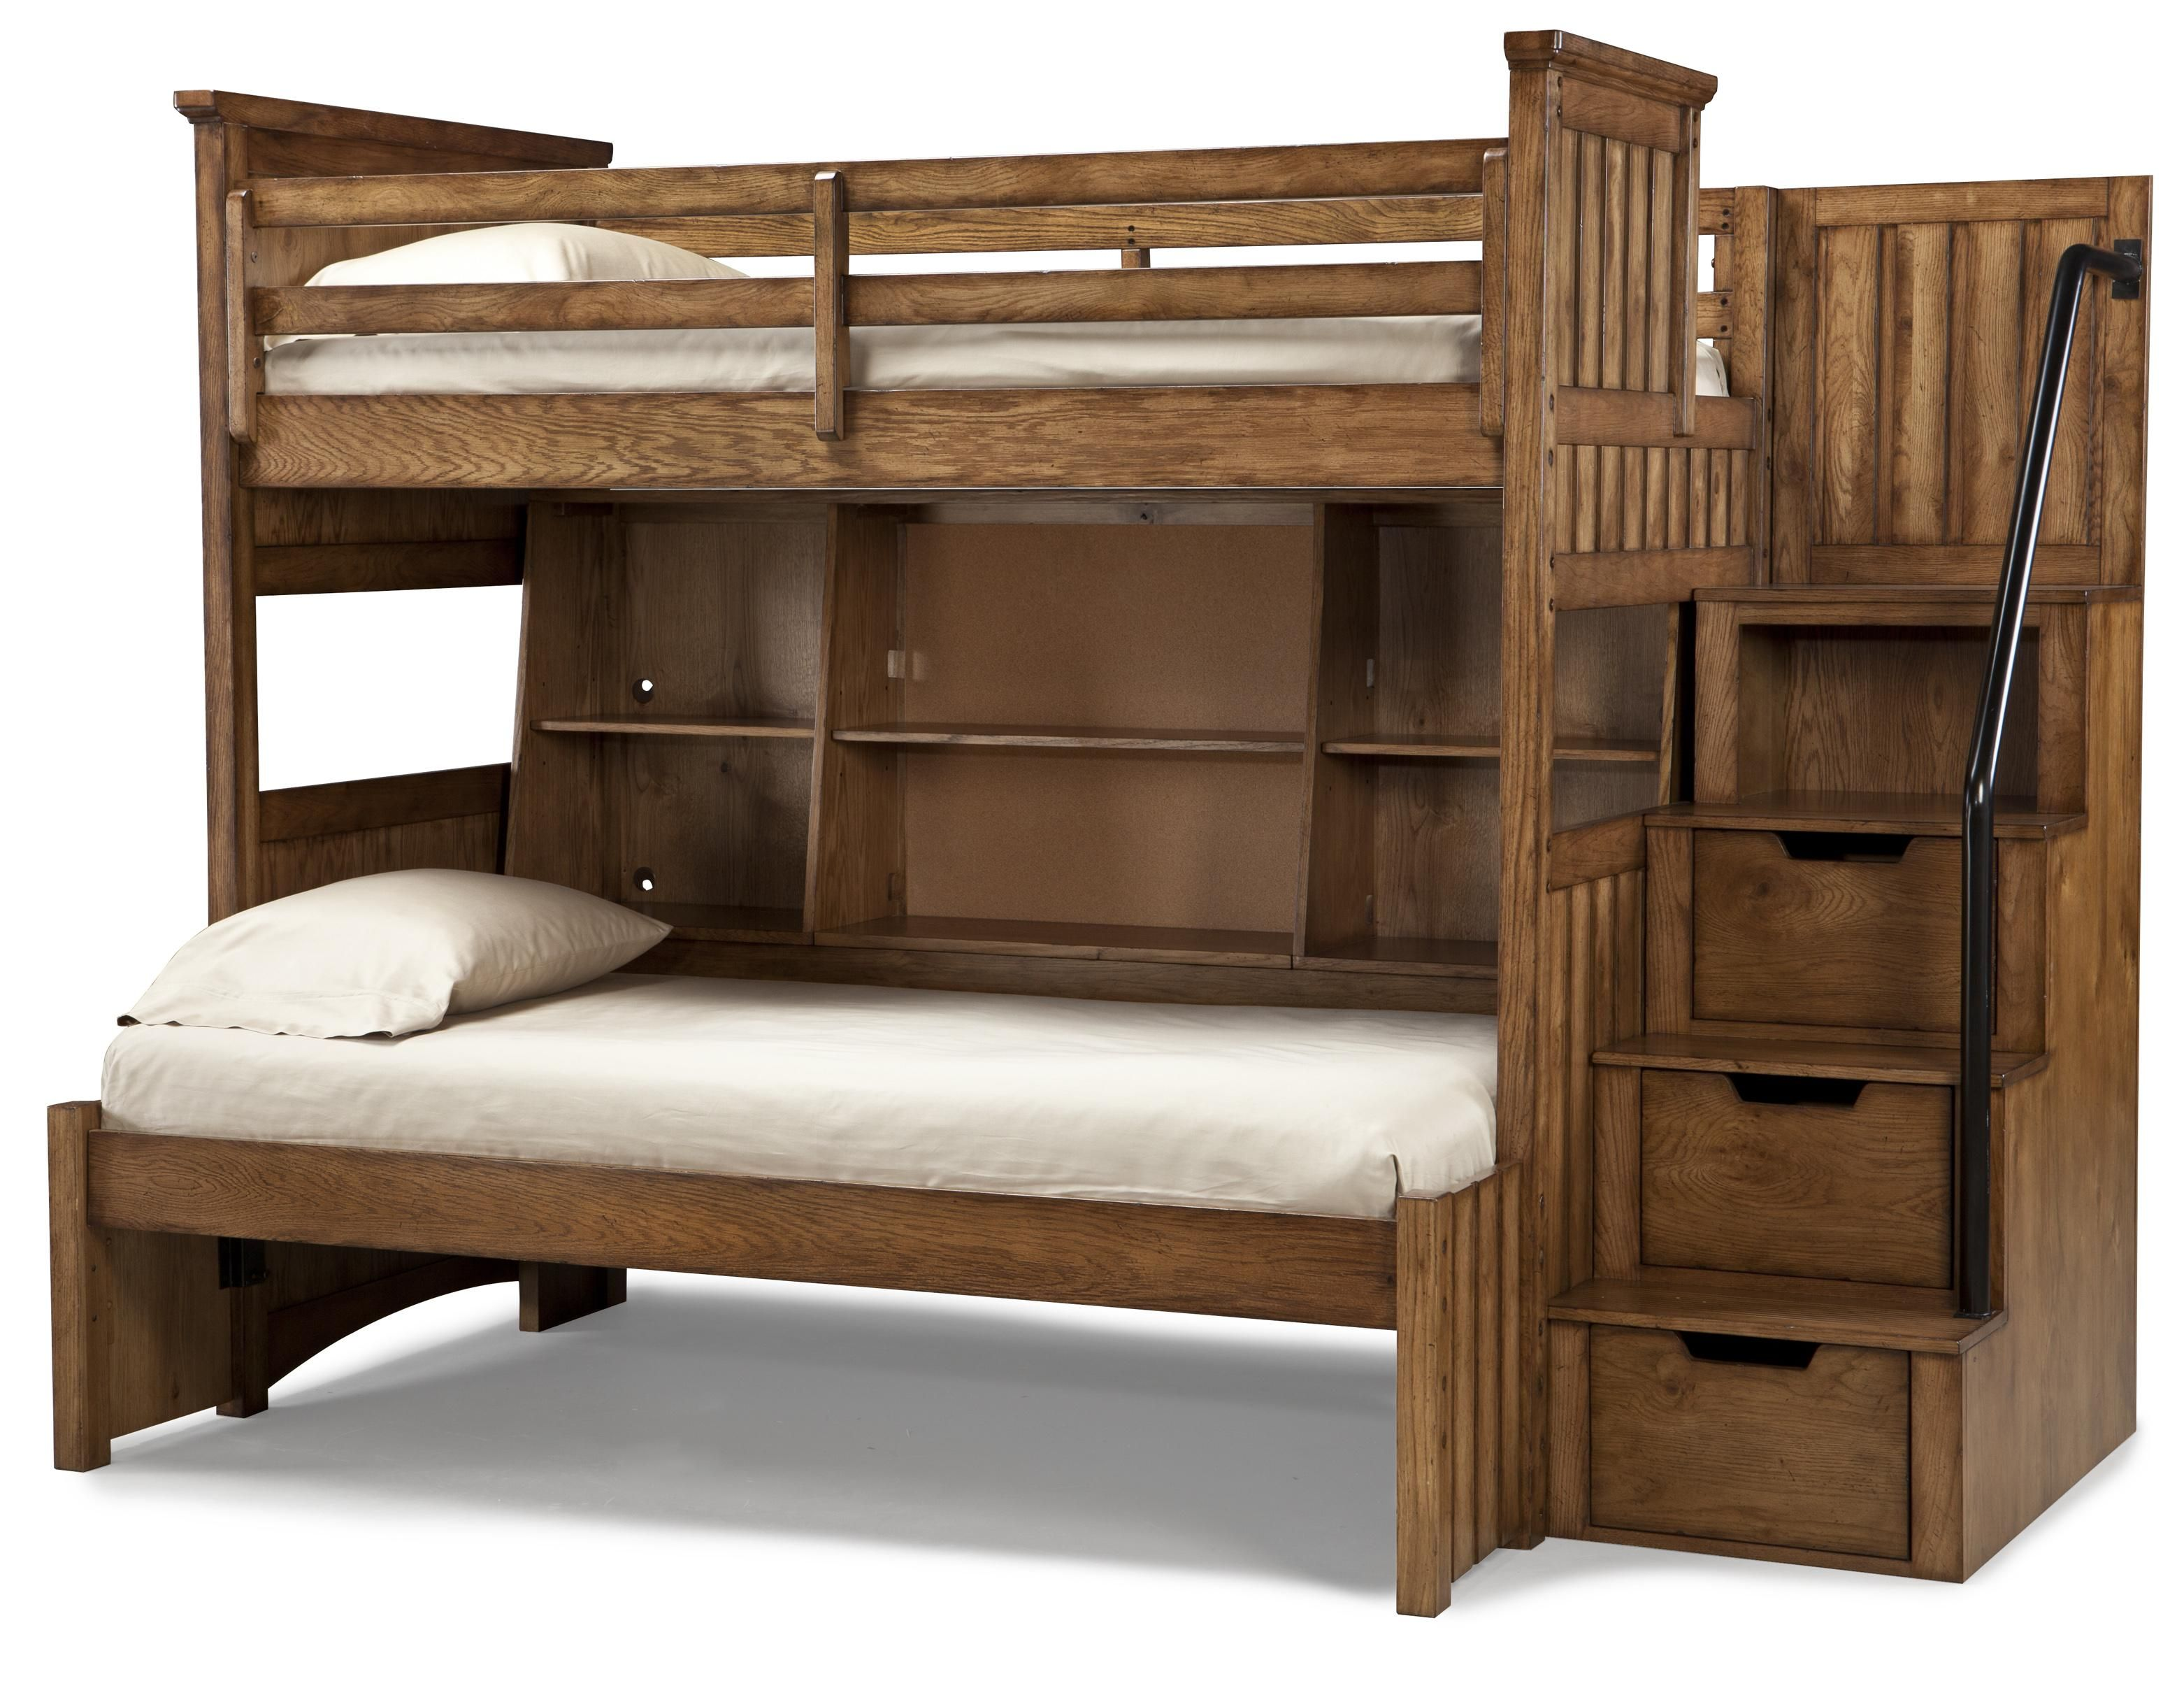 classic wooden unfinished bunk beds with stairs hidden storage as well as open shelves built in